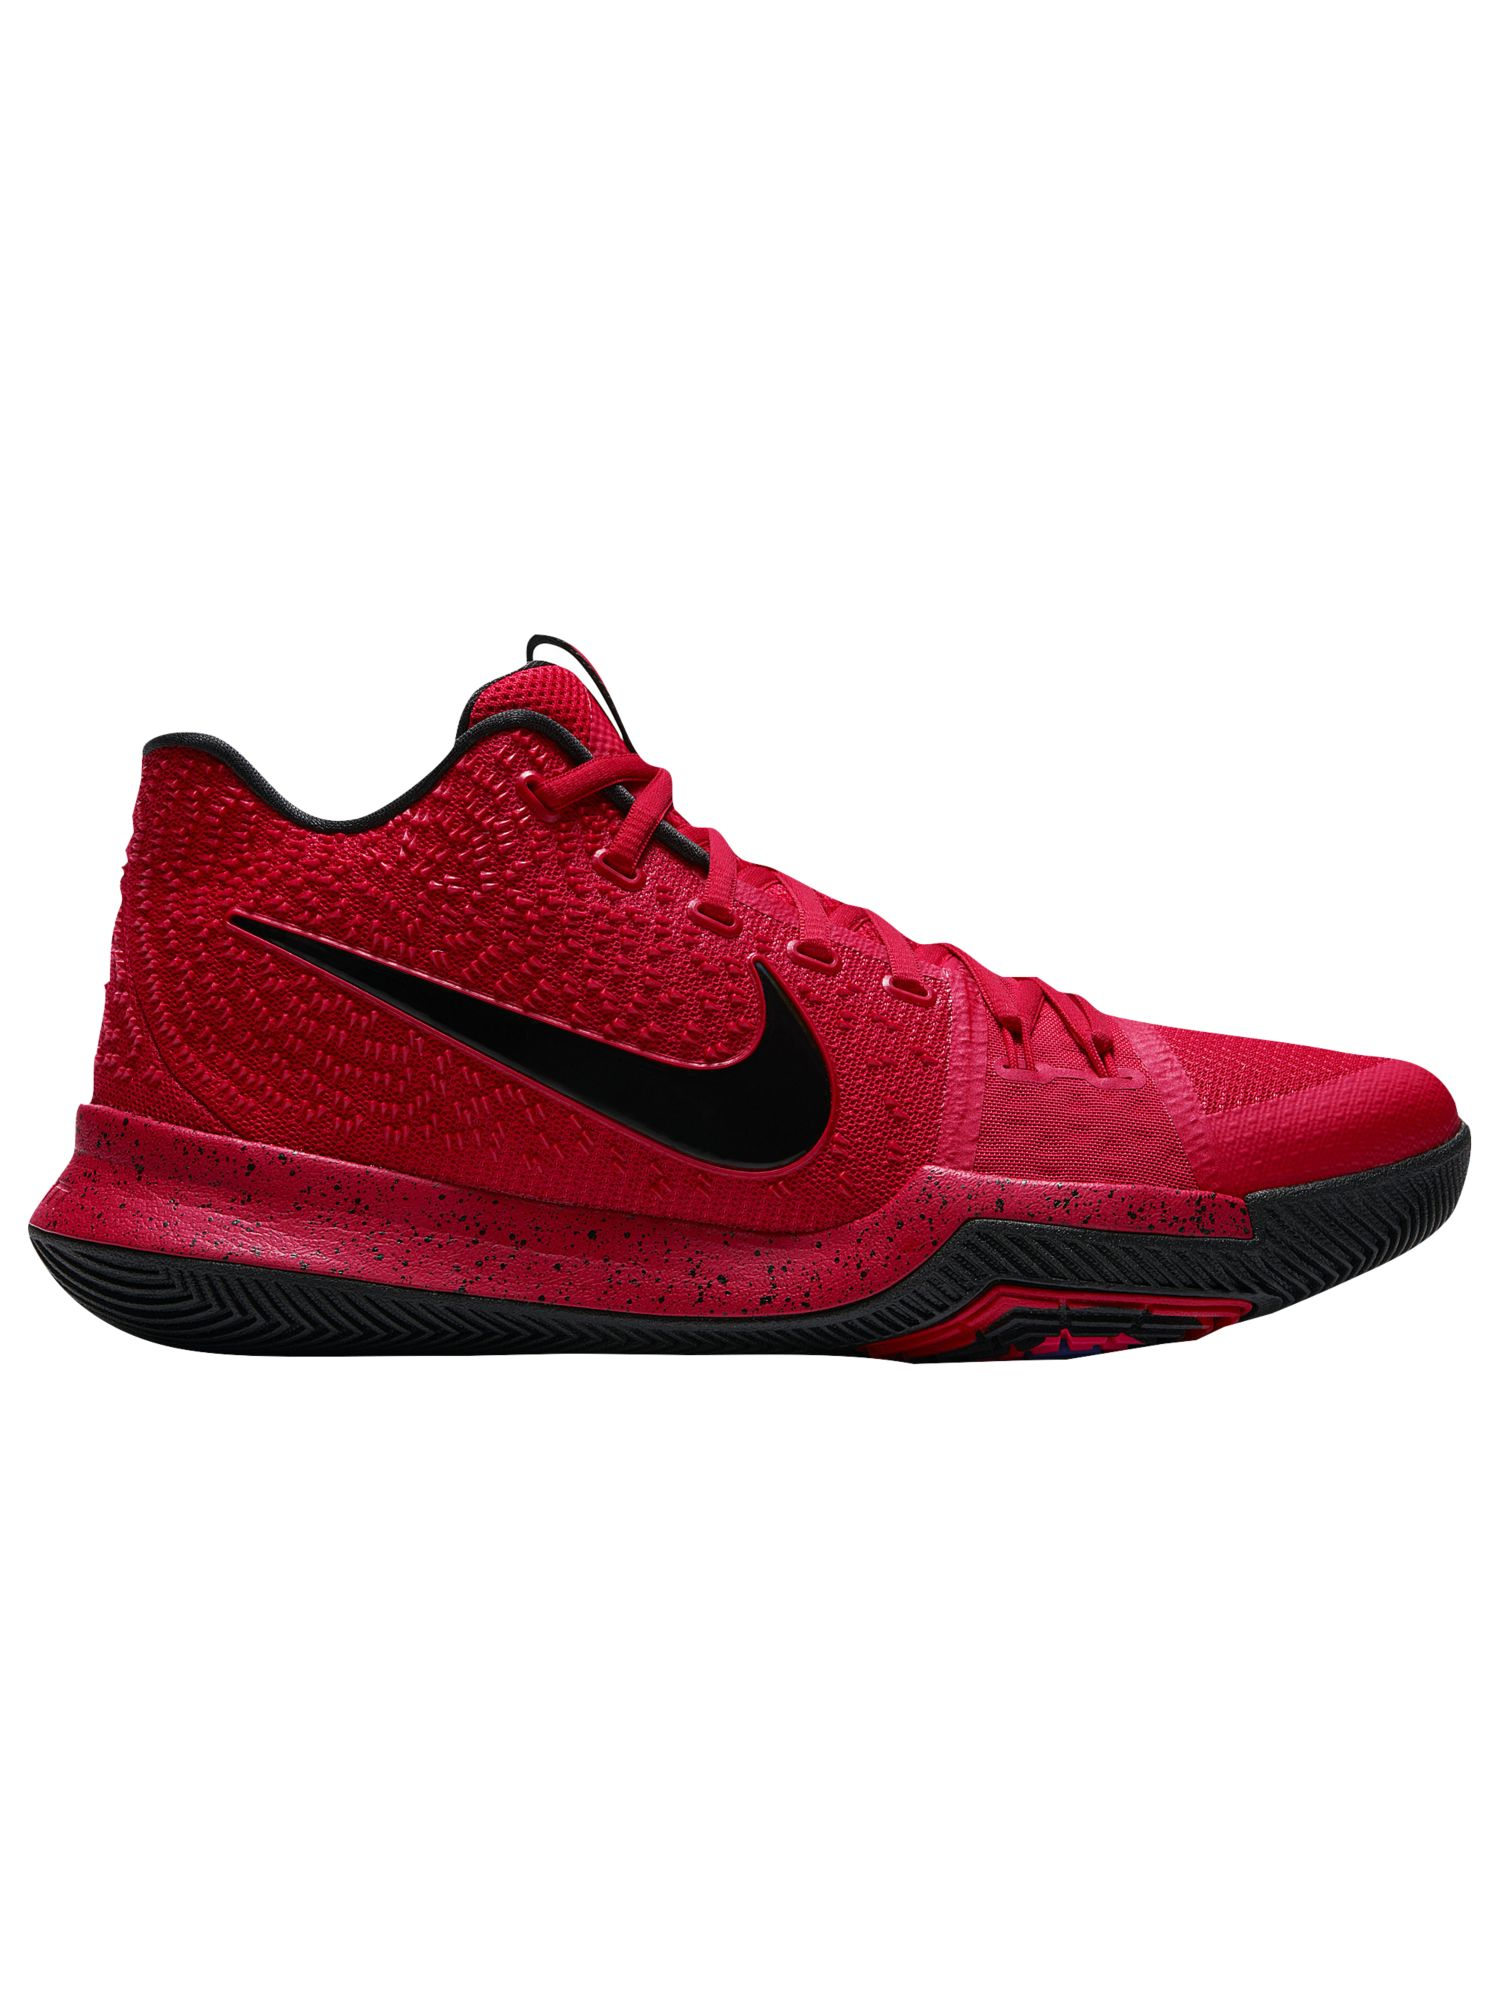 482dcf4dd995 ... italy nike kyrie 3 mens basketball shoes irving kyrie university red  black team red 4cf1a b86d8